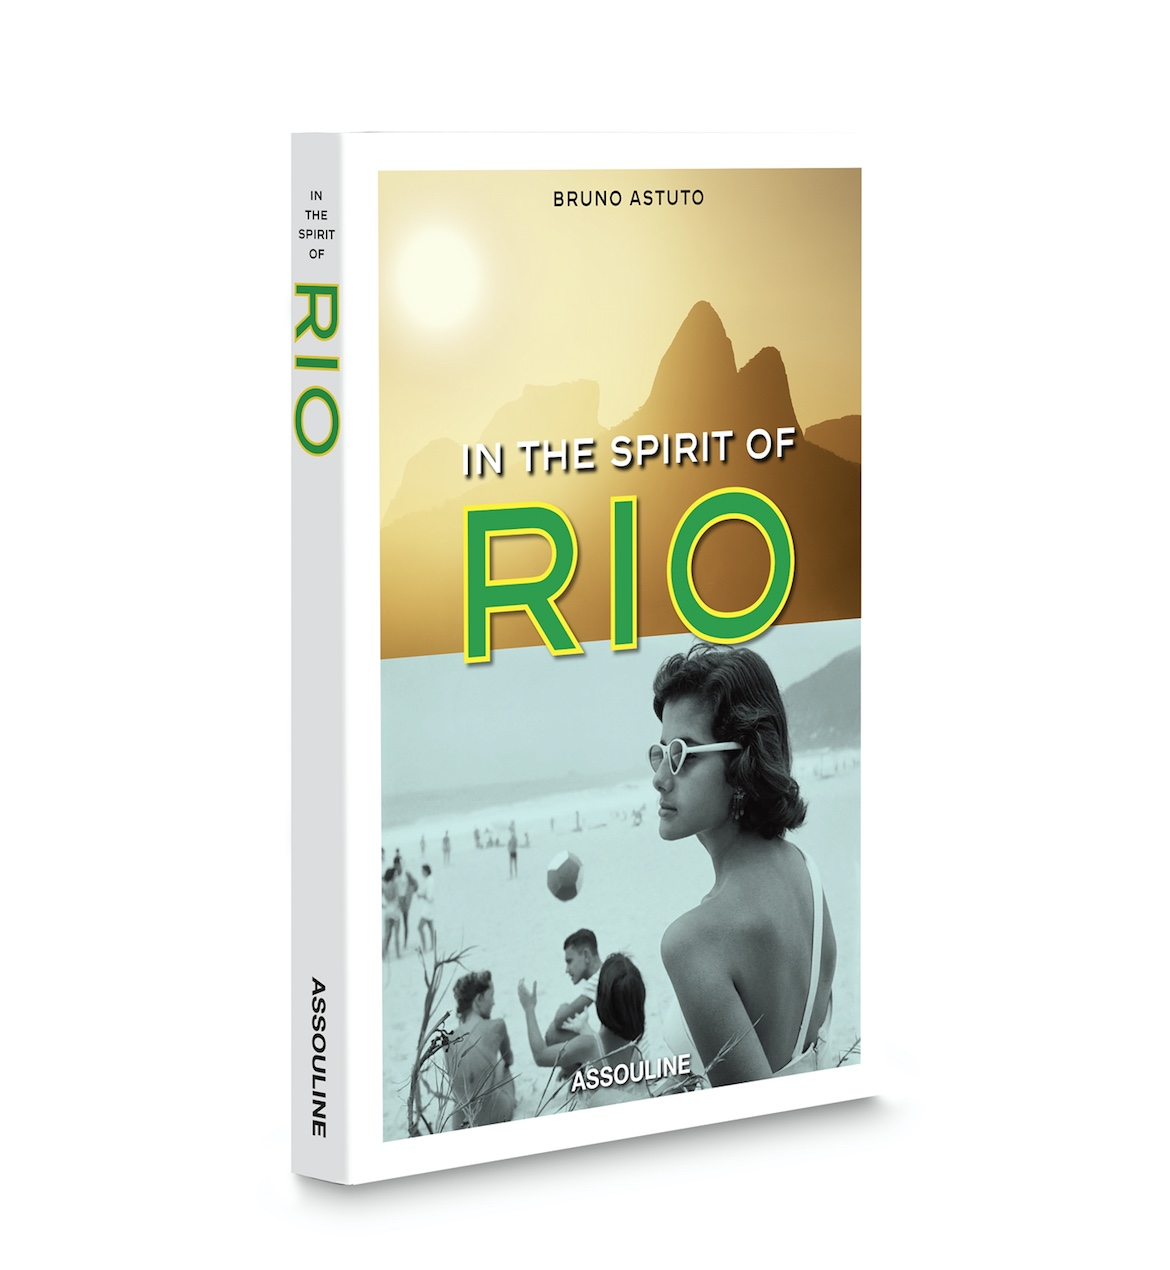 In the spirit of Rio Assouline